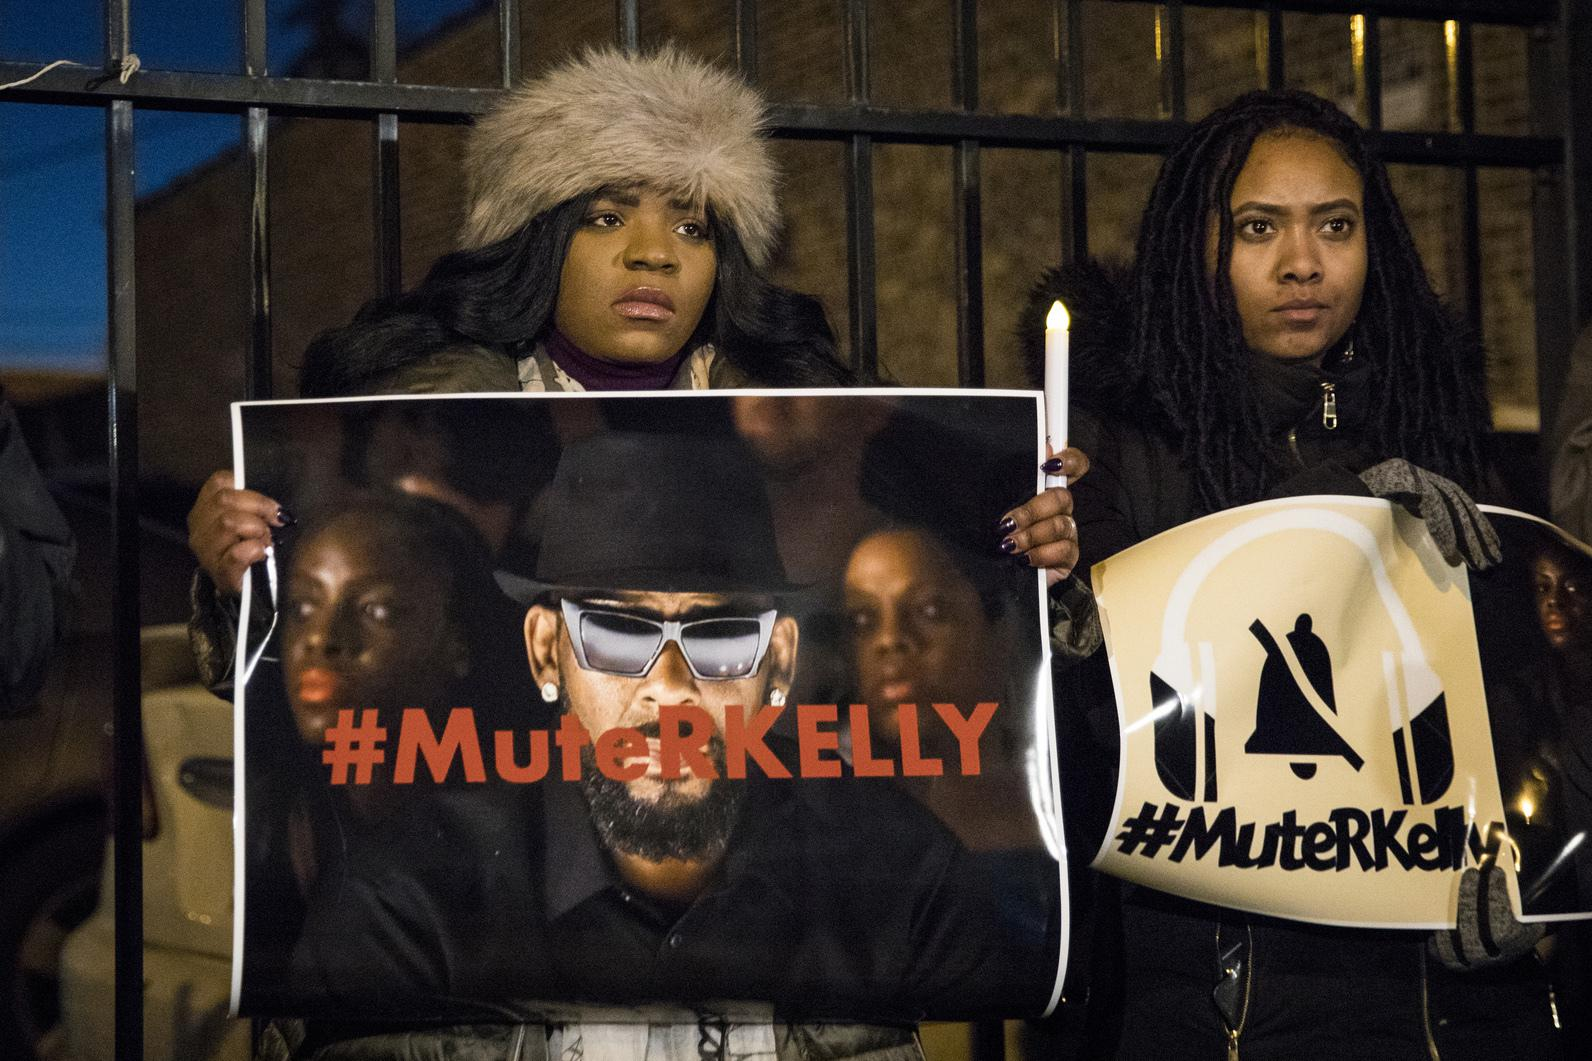 In R. Kelly verdict, Black women see long-overdue justice - Associated Press